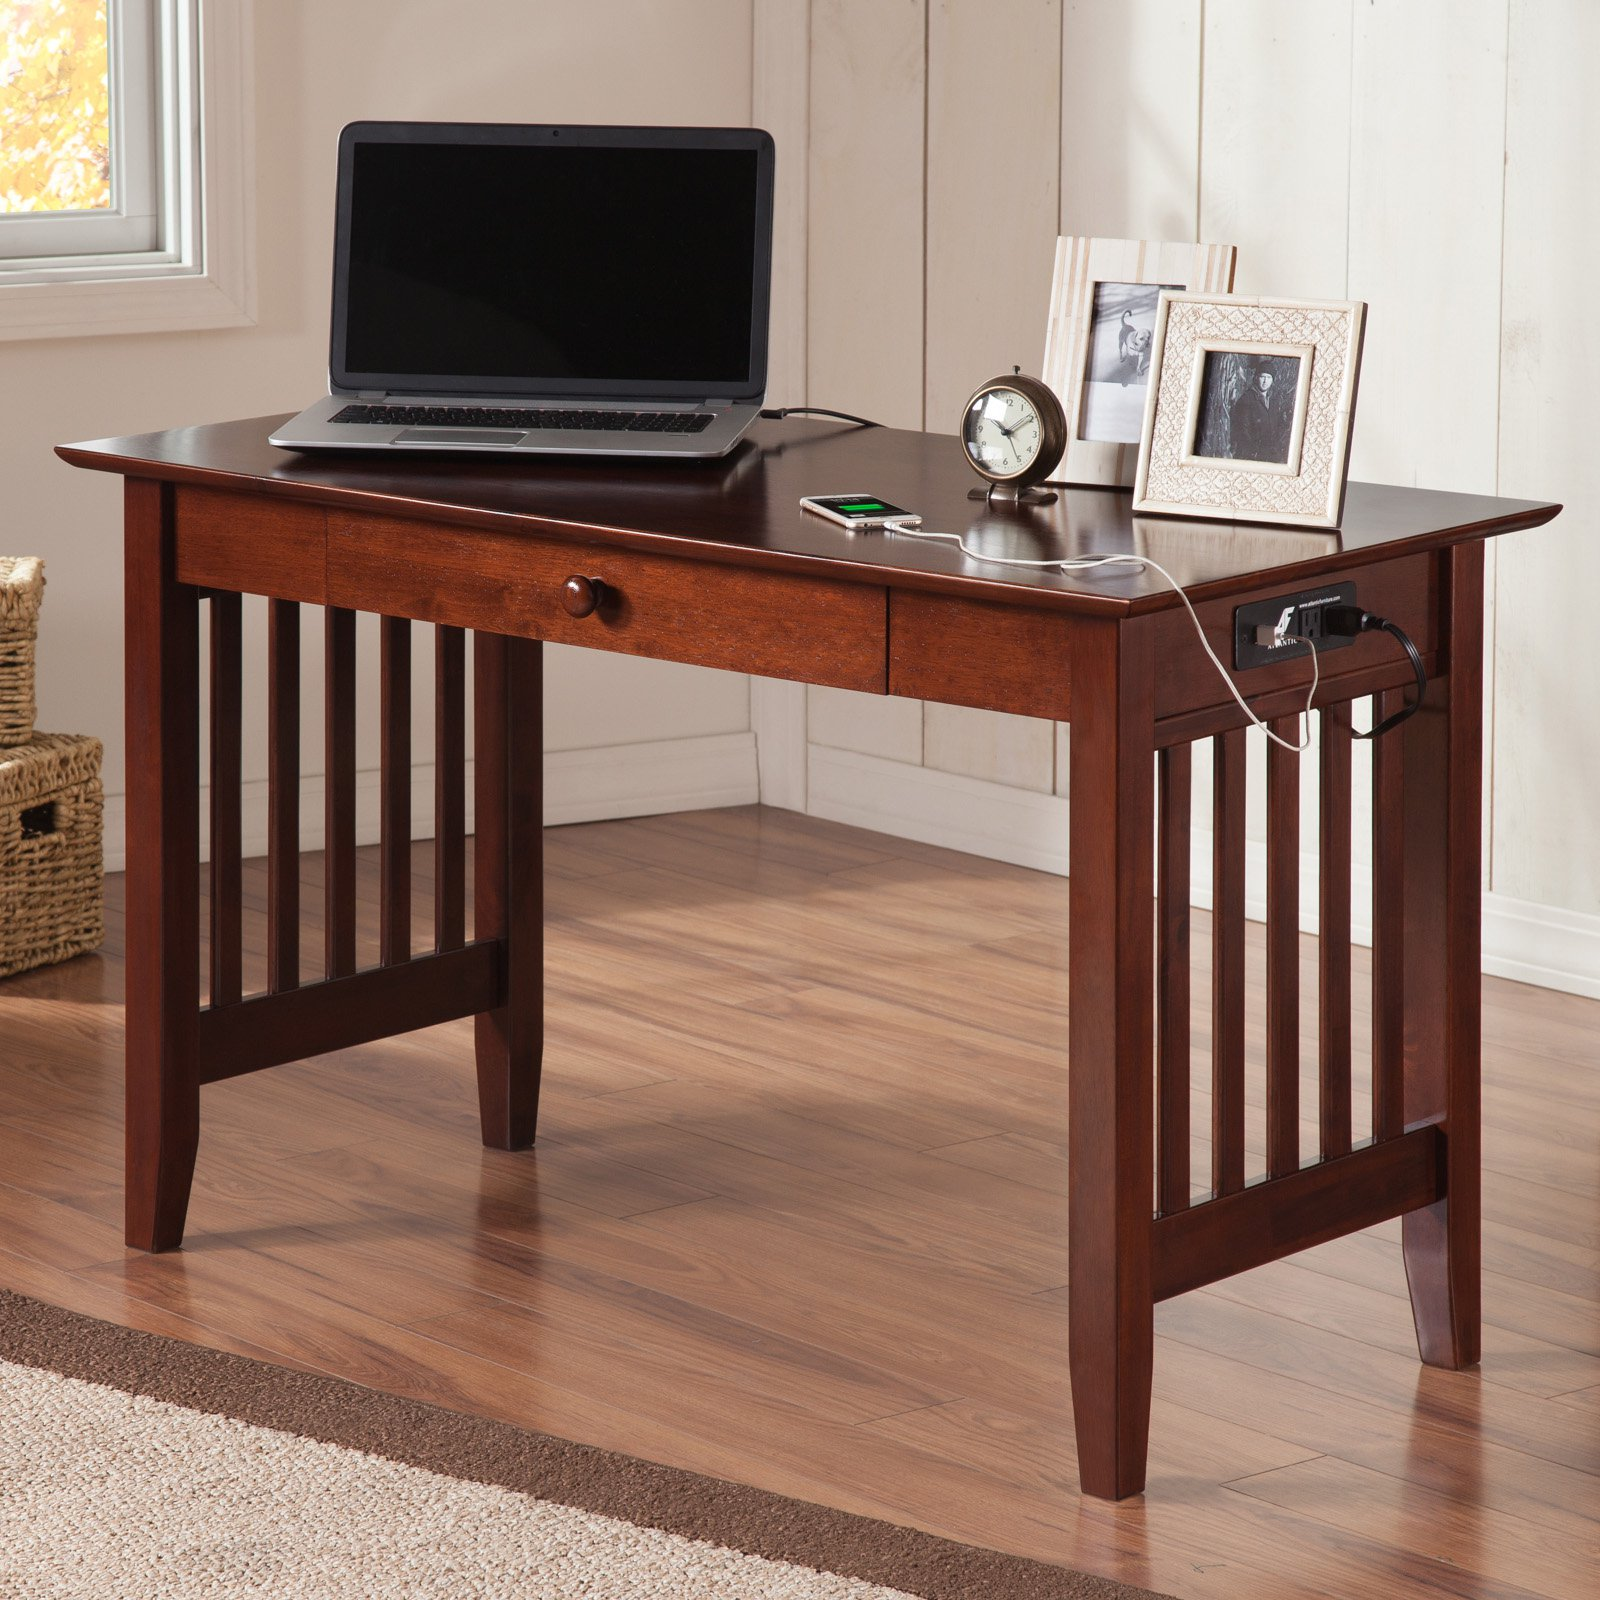 Beau Atlantic Furniture Ralston Desk With Drawer And Charging Station    Walmart.com